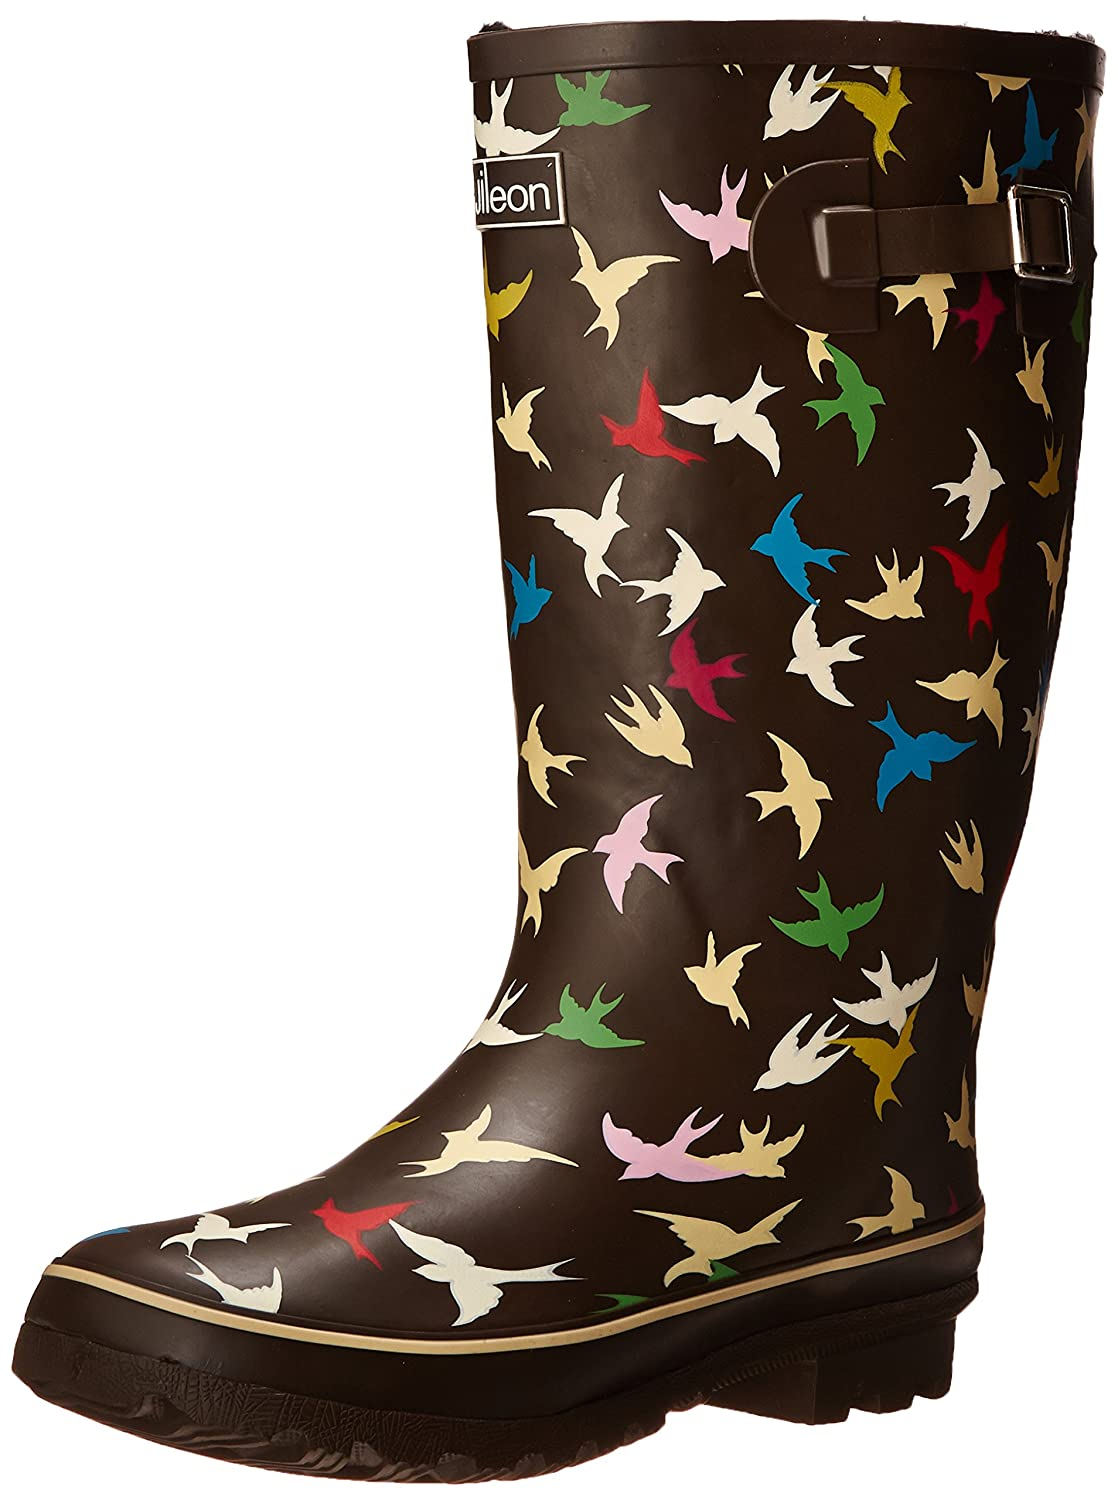 Wide Calf Wellies - Fit up to 18 inch calf - Brown with Coloured Birds - Fleece Lined